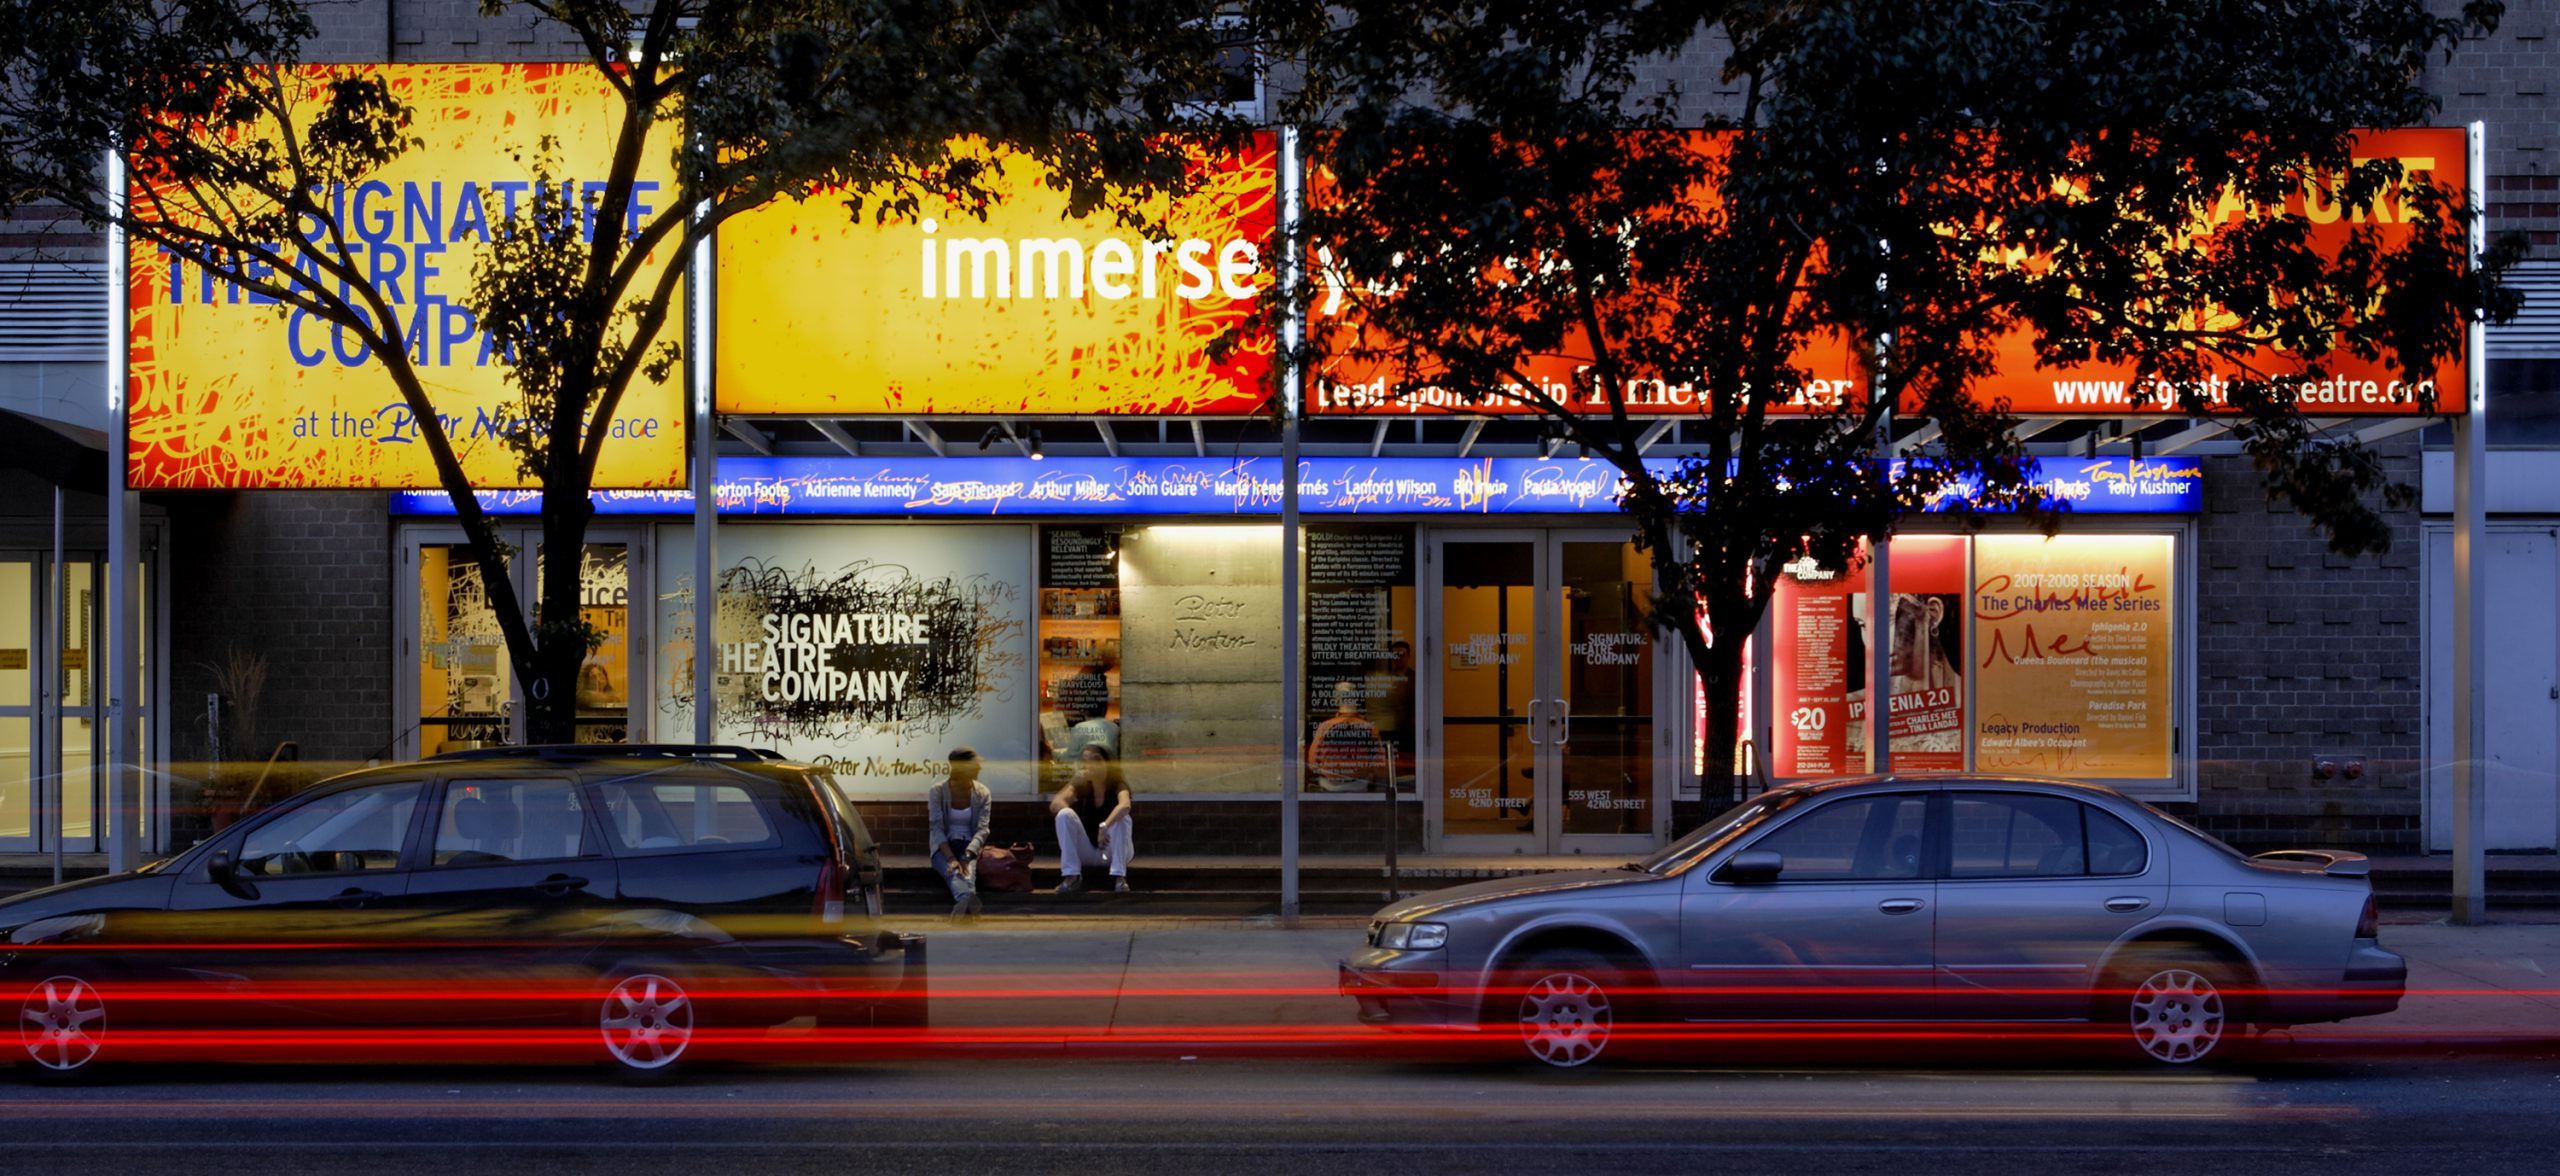 Project image 1 for Signage, Signature Theatre Company